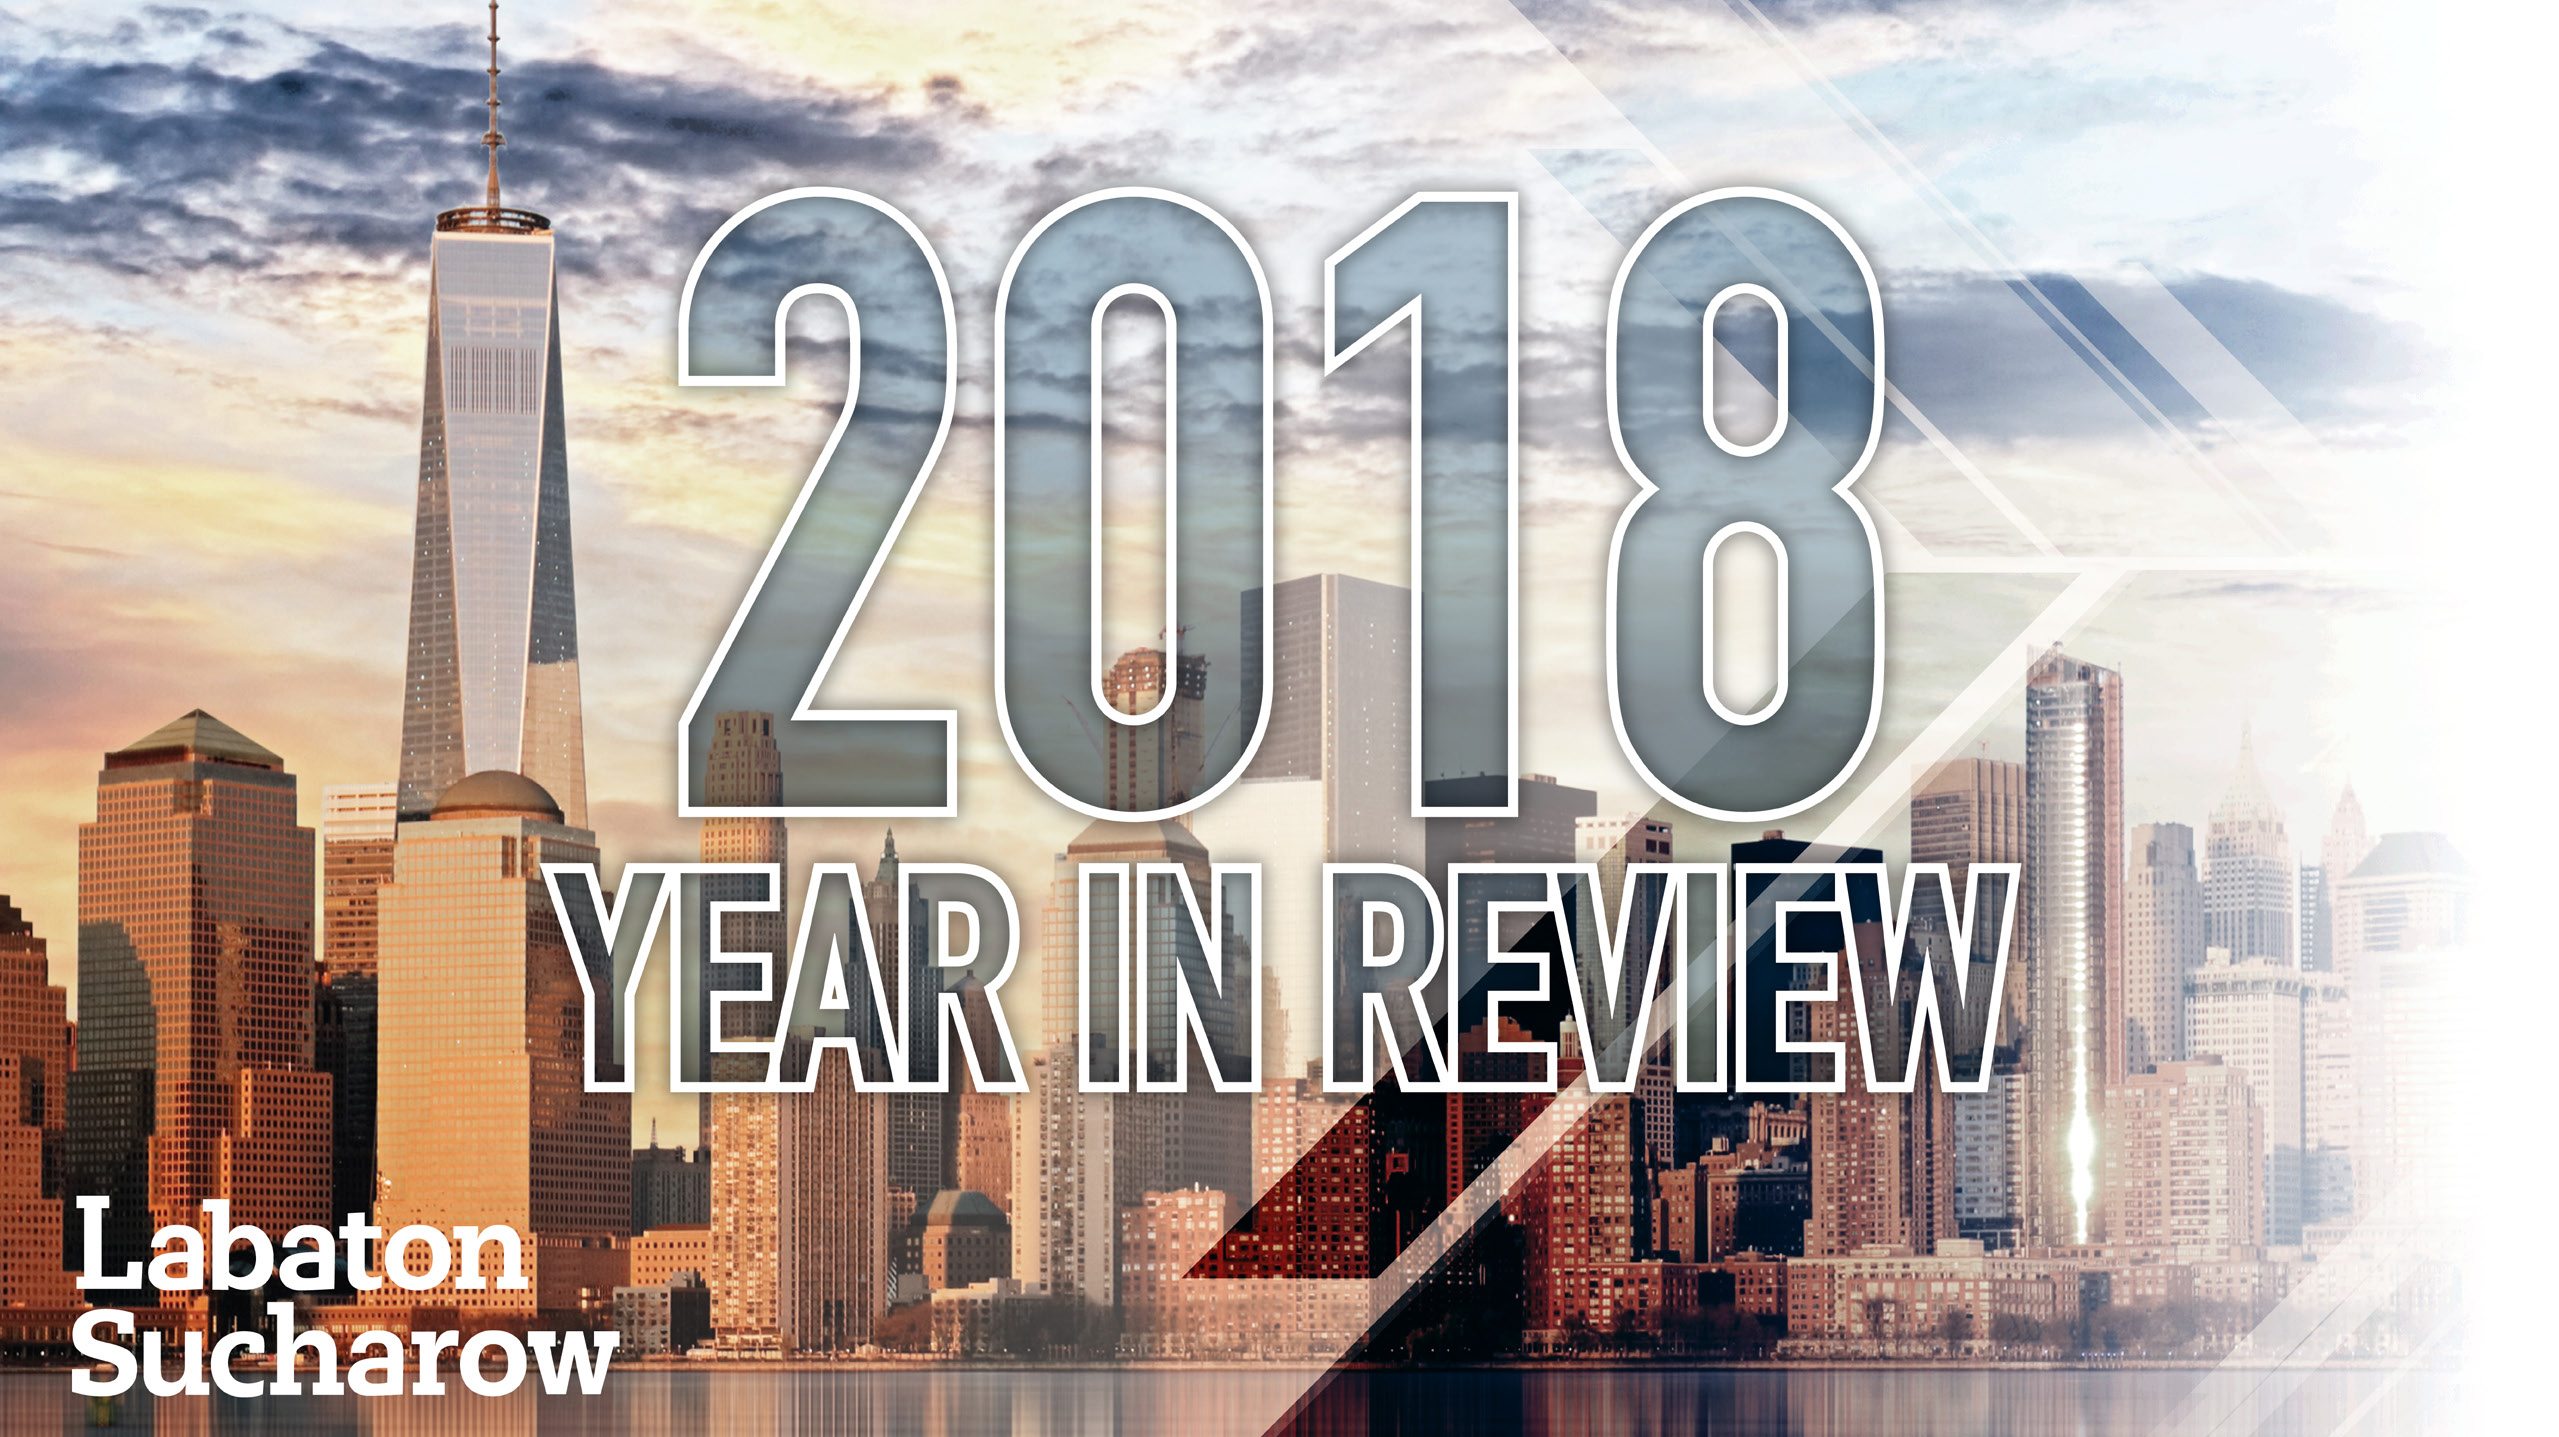 2018 Year in Review Featured Image